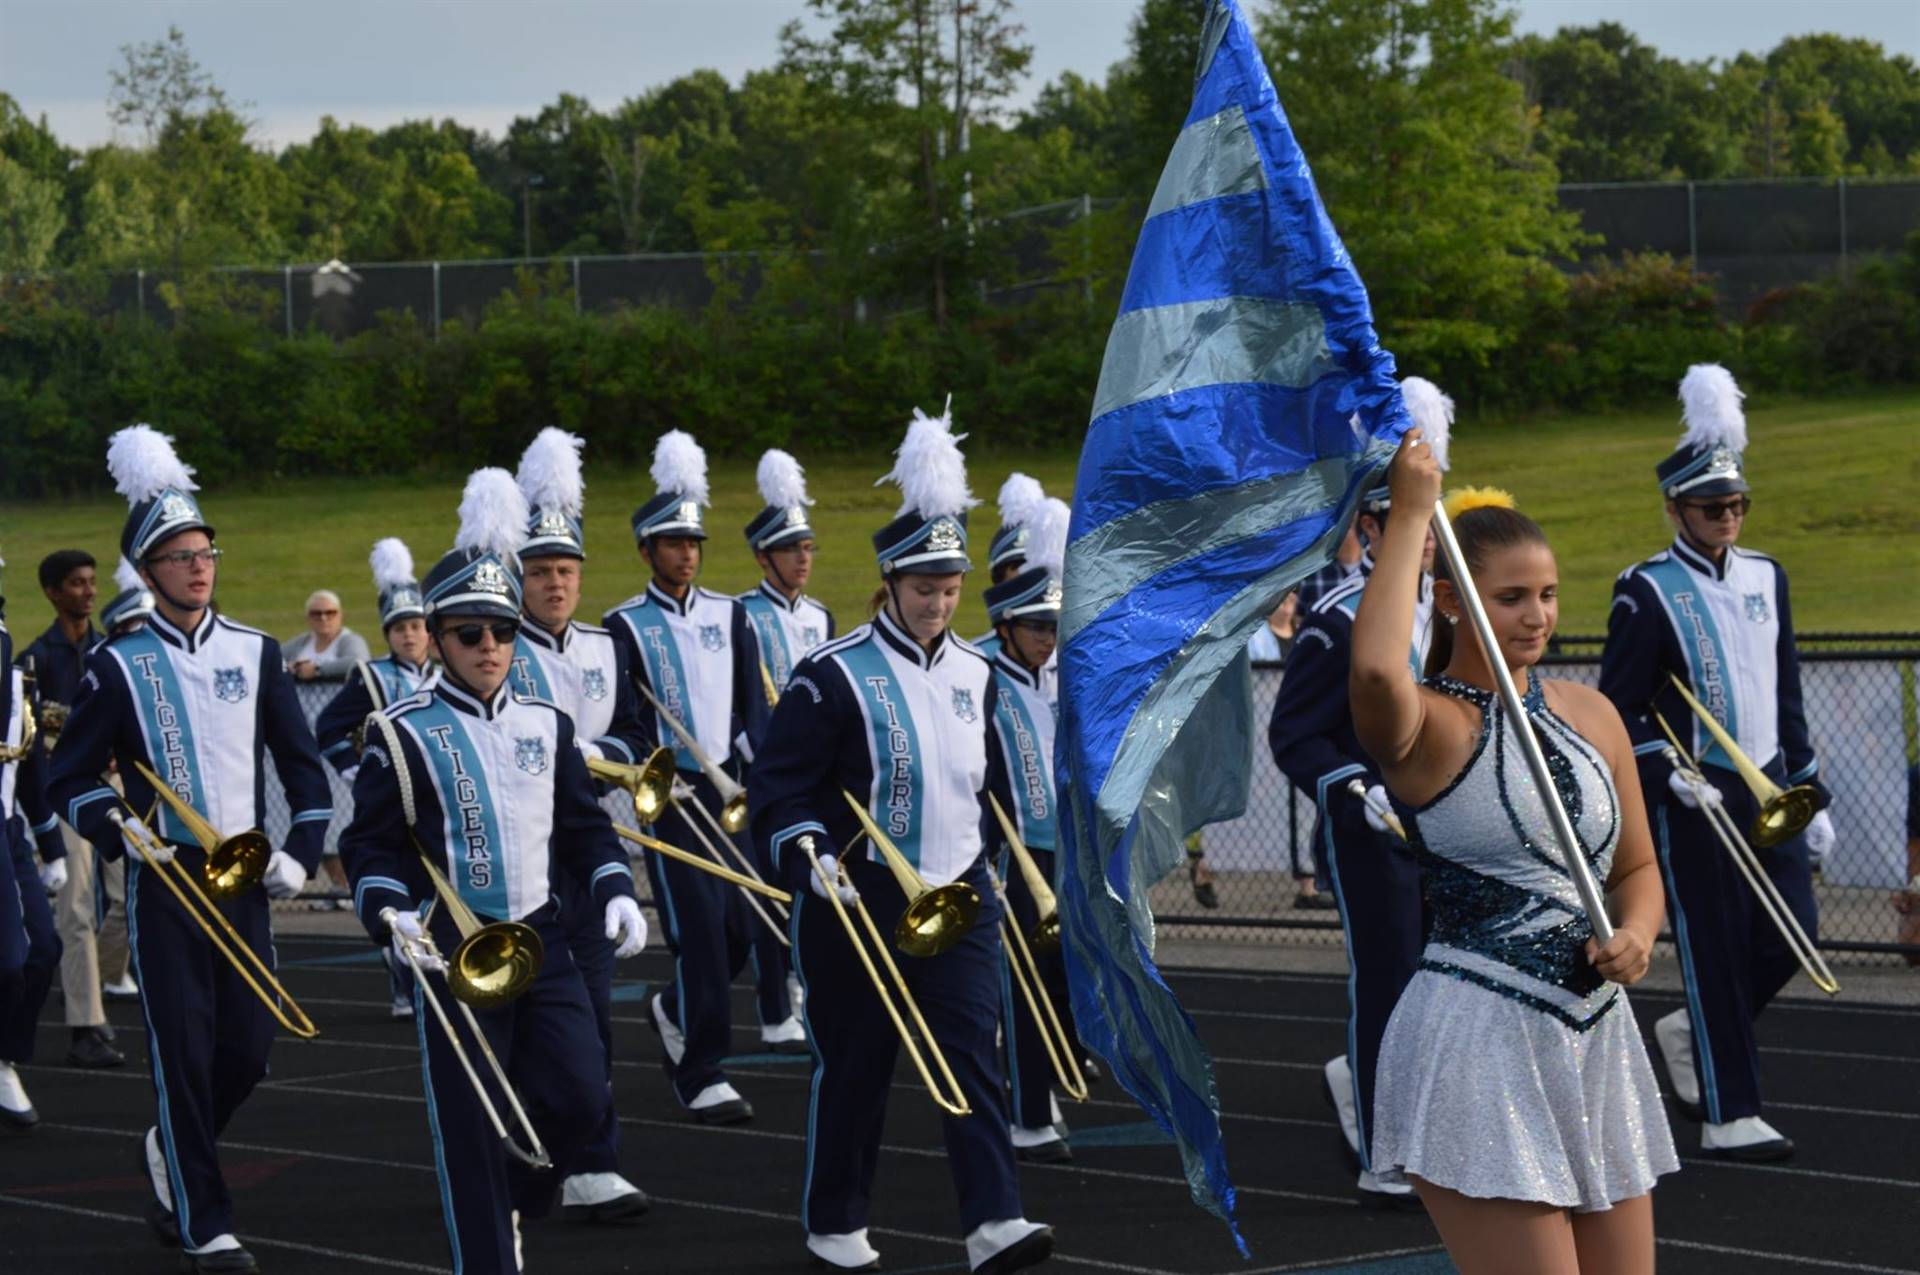 Marching Band Students and Drill Team marching before a game